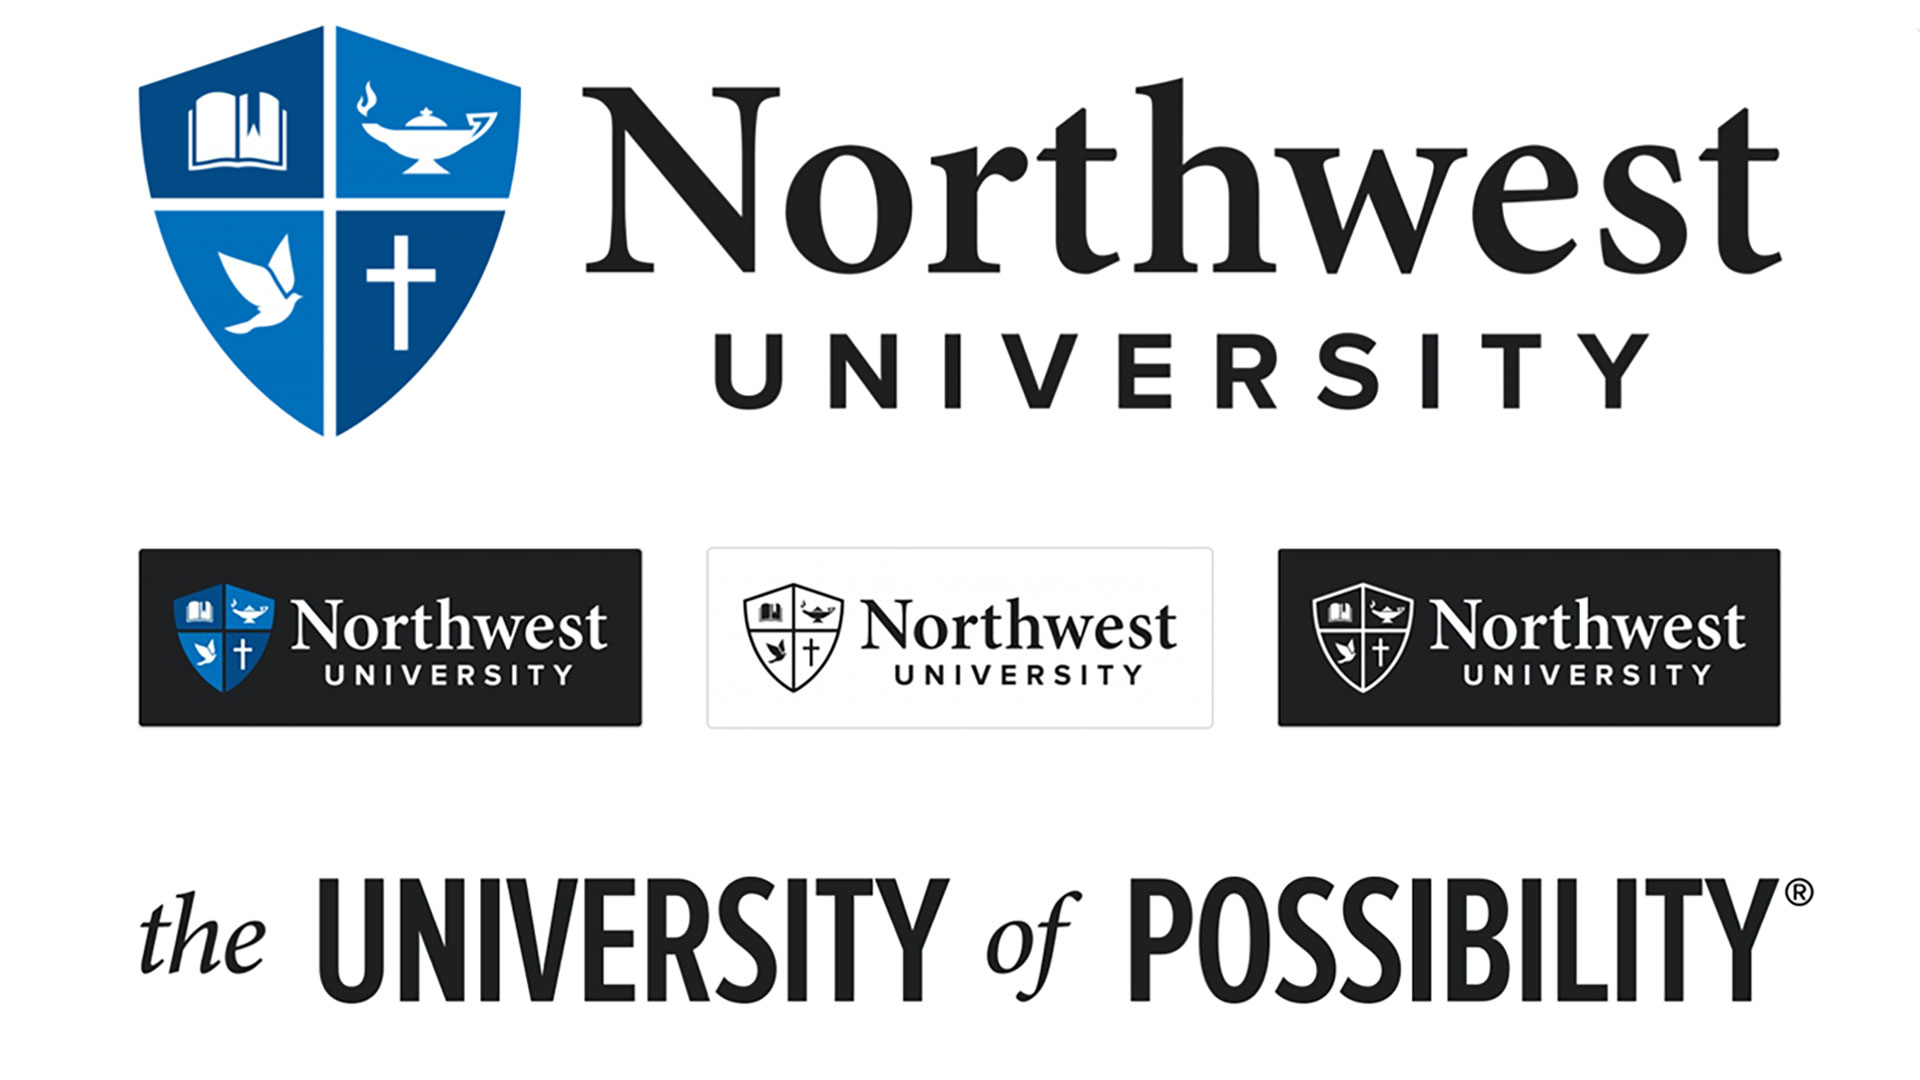 Northwest University Logo and Branding by Mark Sheraton